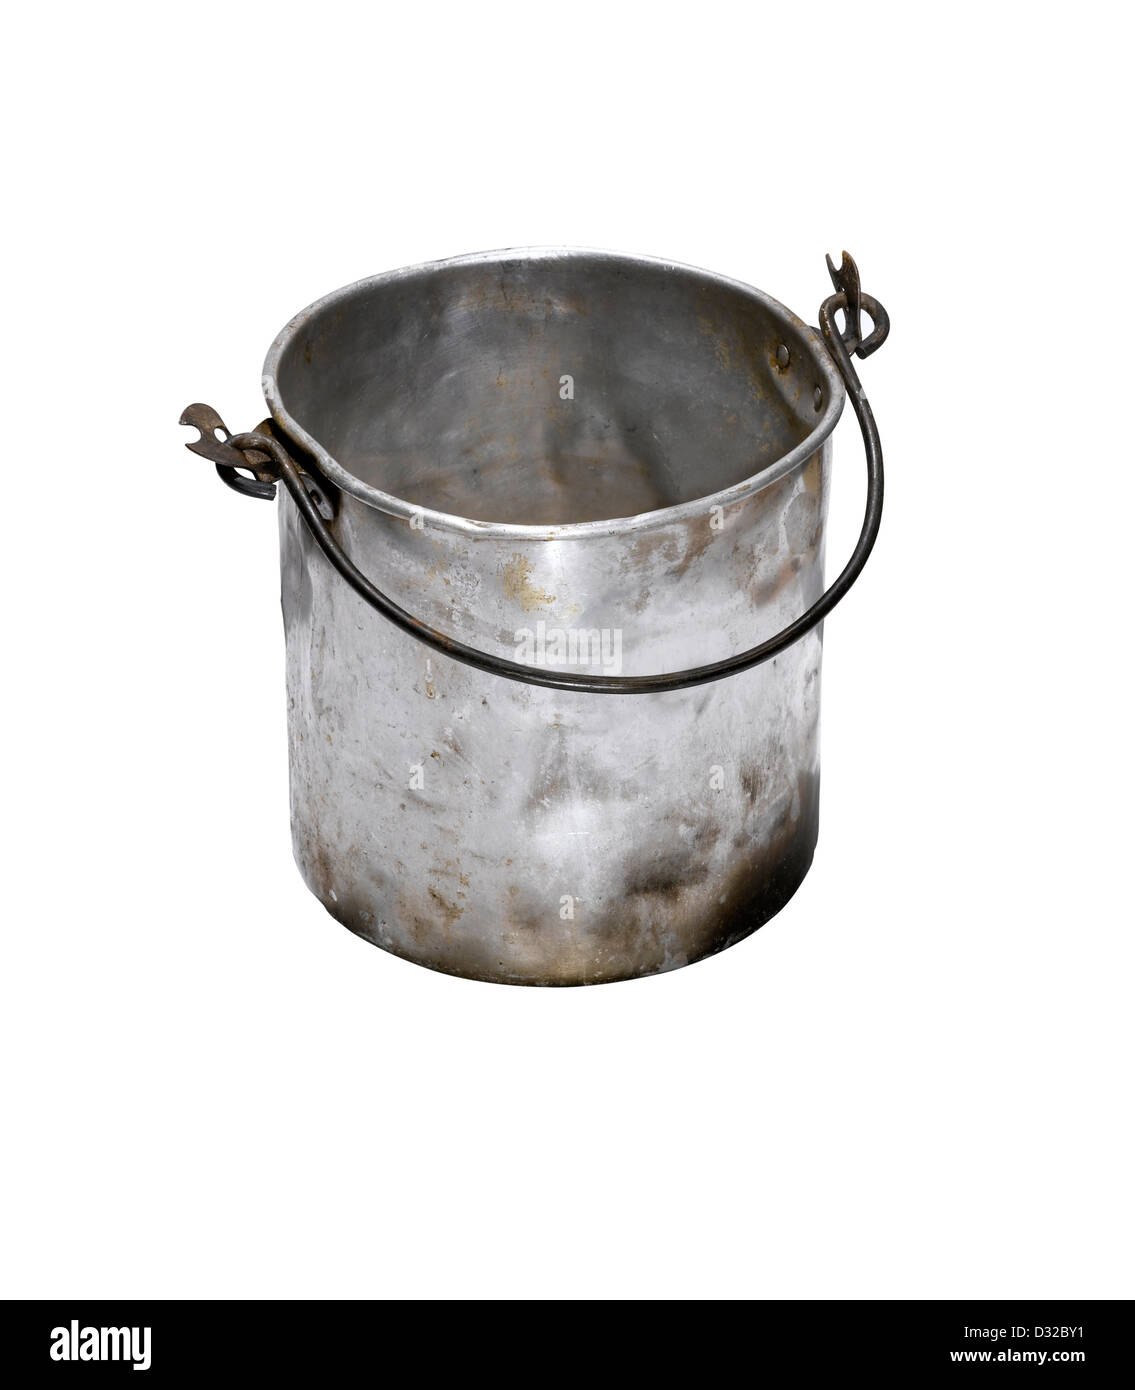 An old battered silver bucket with the handle down - Stock Image